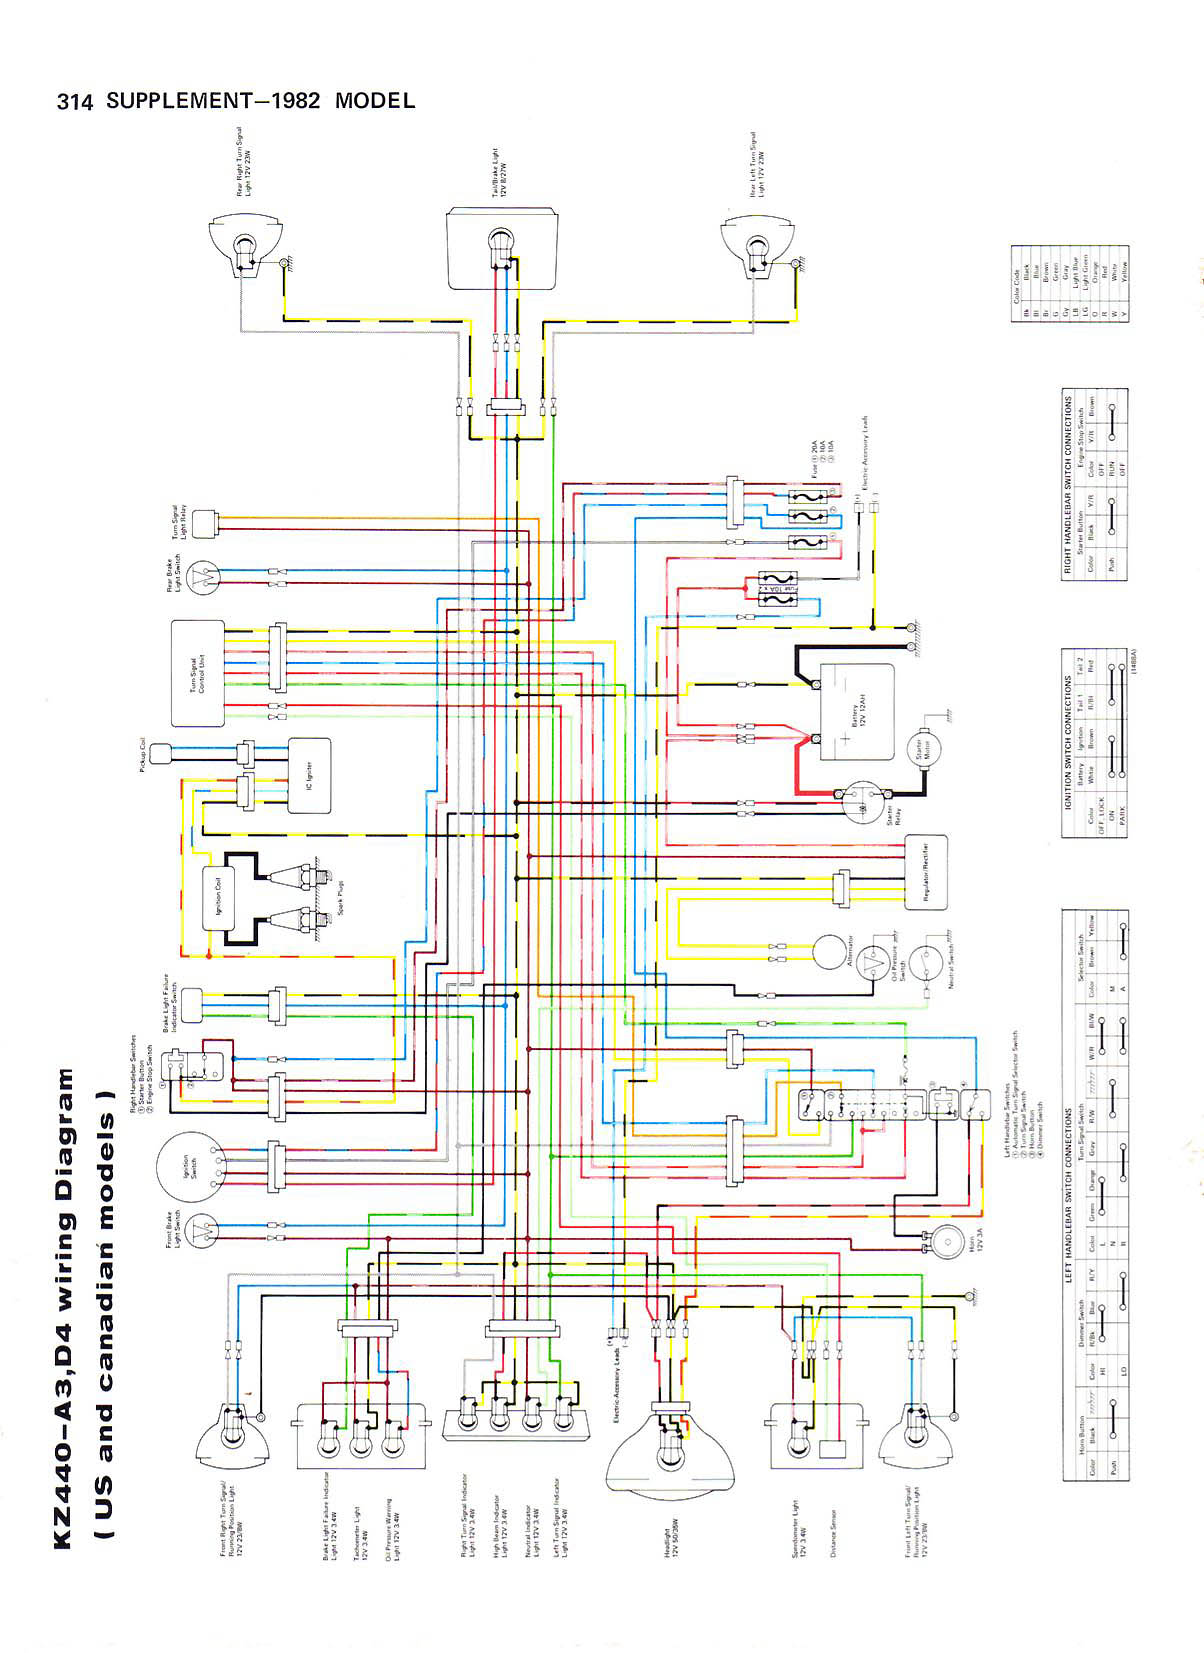 Kawasaki KZ 440 %2780 a %2782 Service Manual_Page_311 index of kz440 wiring diagrams 81 kz440 wiring diagram at bakdesigns.co